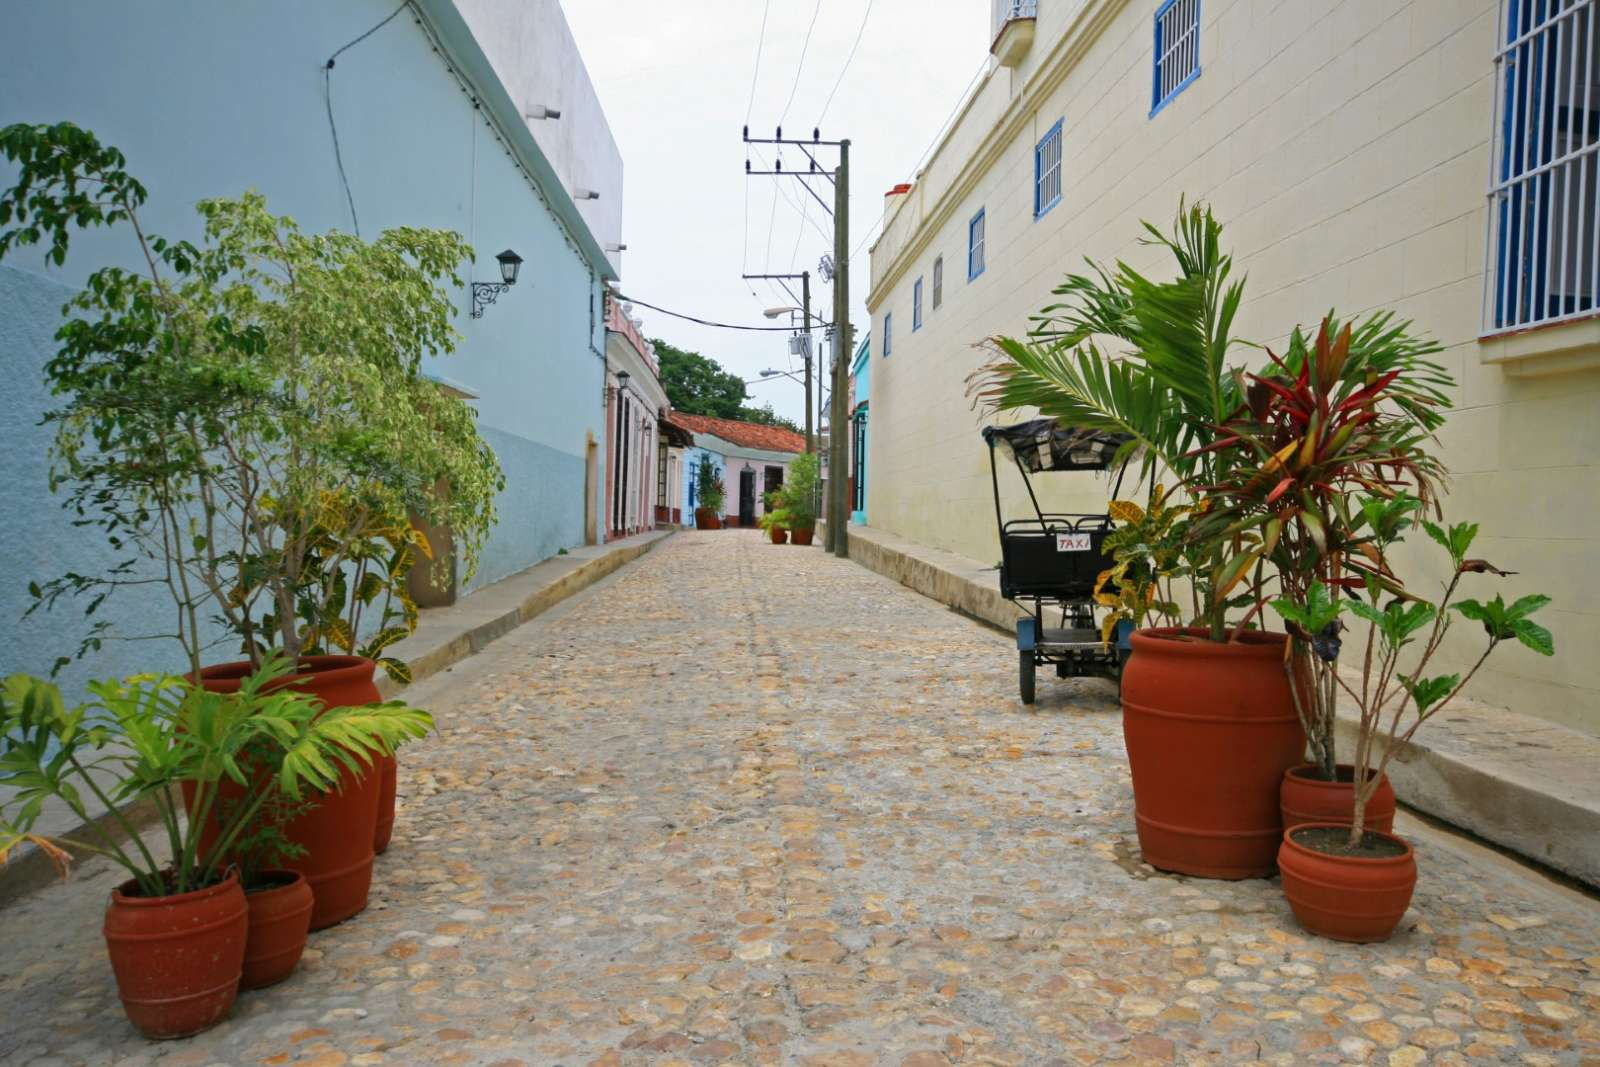 A quiet, cobbled street in Sancti Spiritus, Cuba